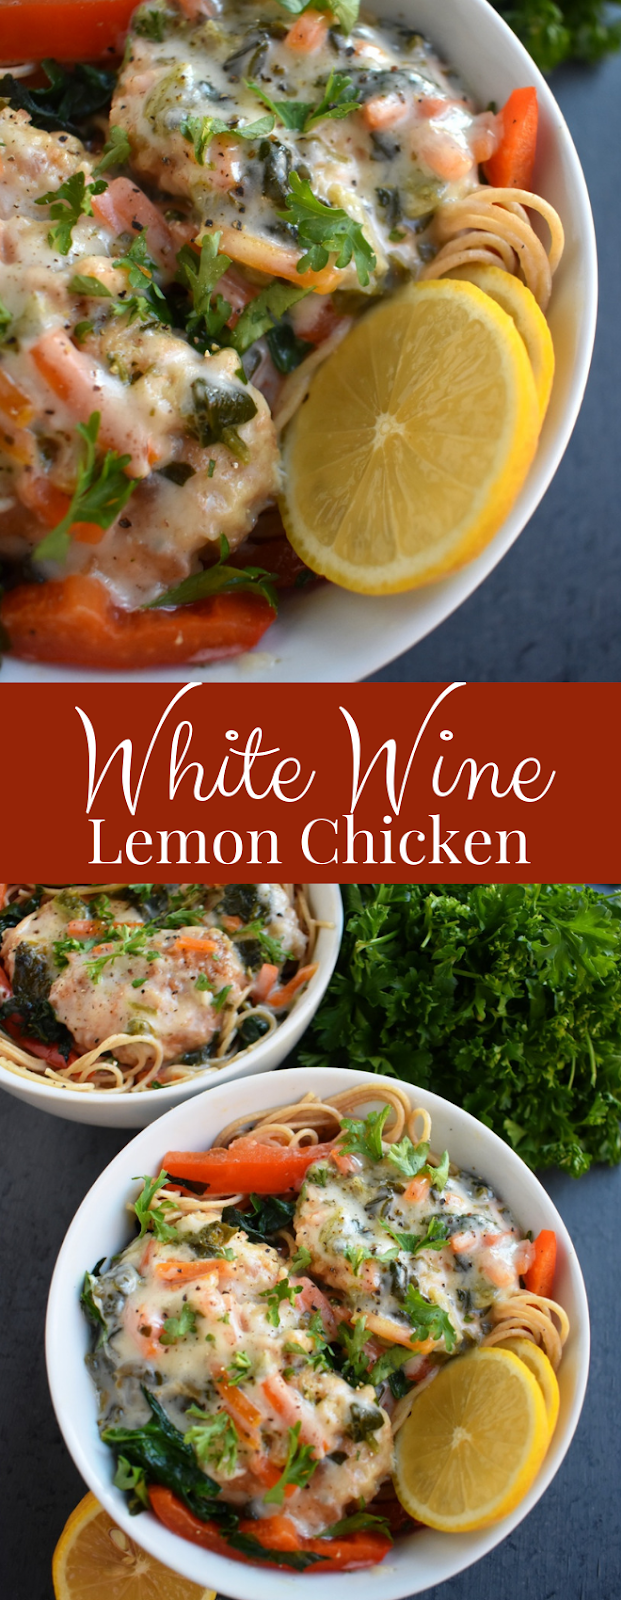 White Wine Lemon Chicken features a creamy white wine lemon sauce with spinach, carrots and red peppers served over angel hair pasta and is ready in just 15 minutes! www.nutritionistreviews.com #dinner #easydinner #chicken #pasta